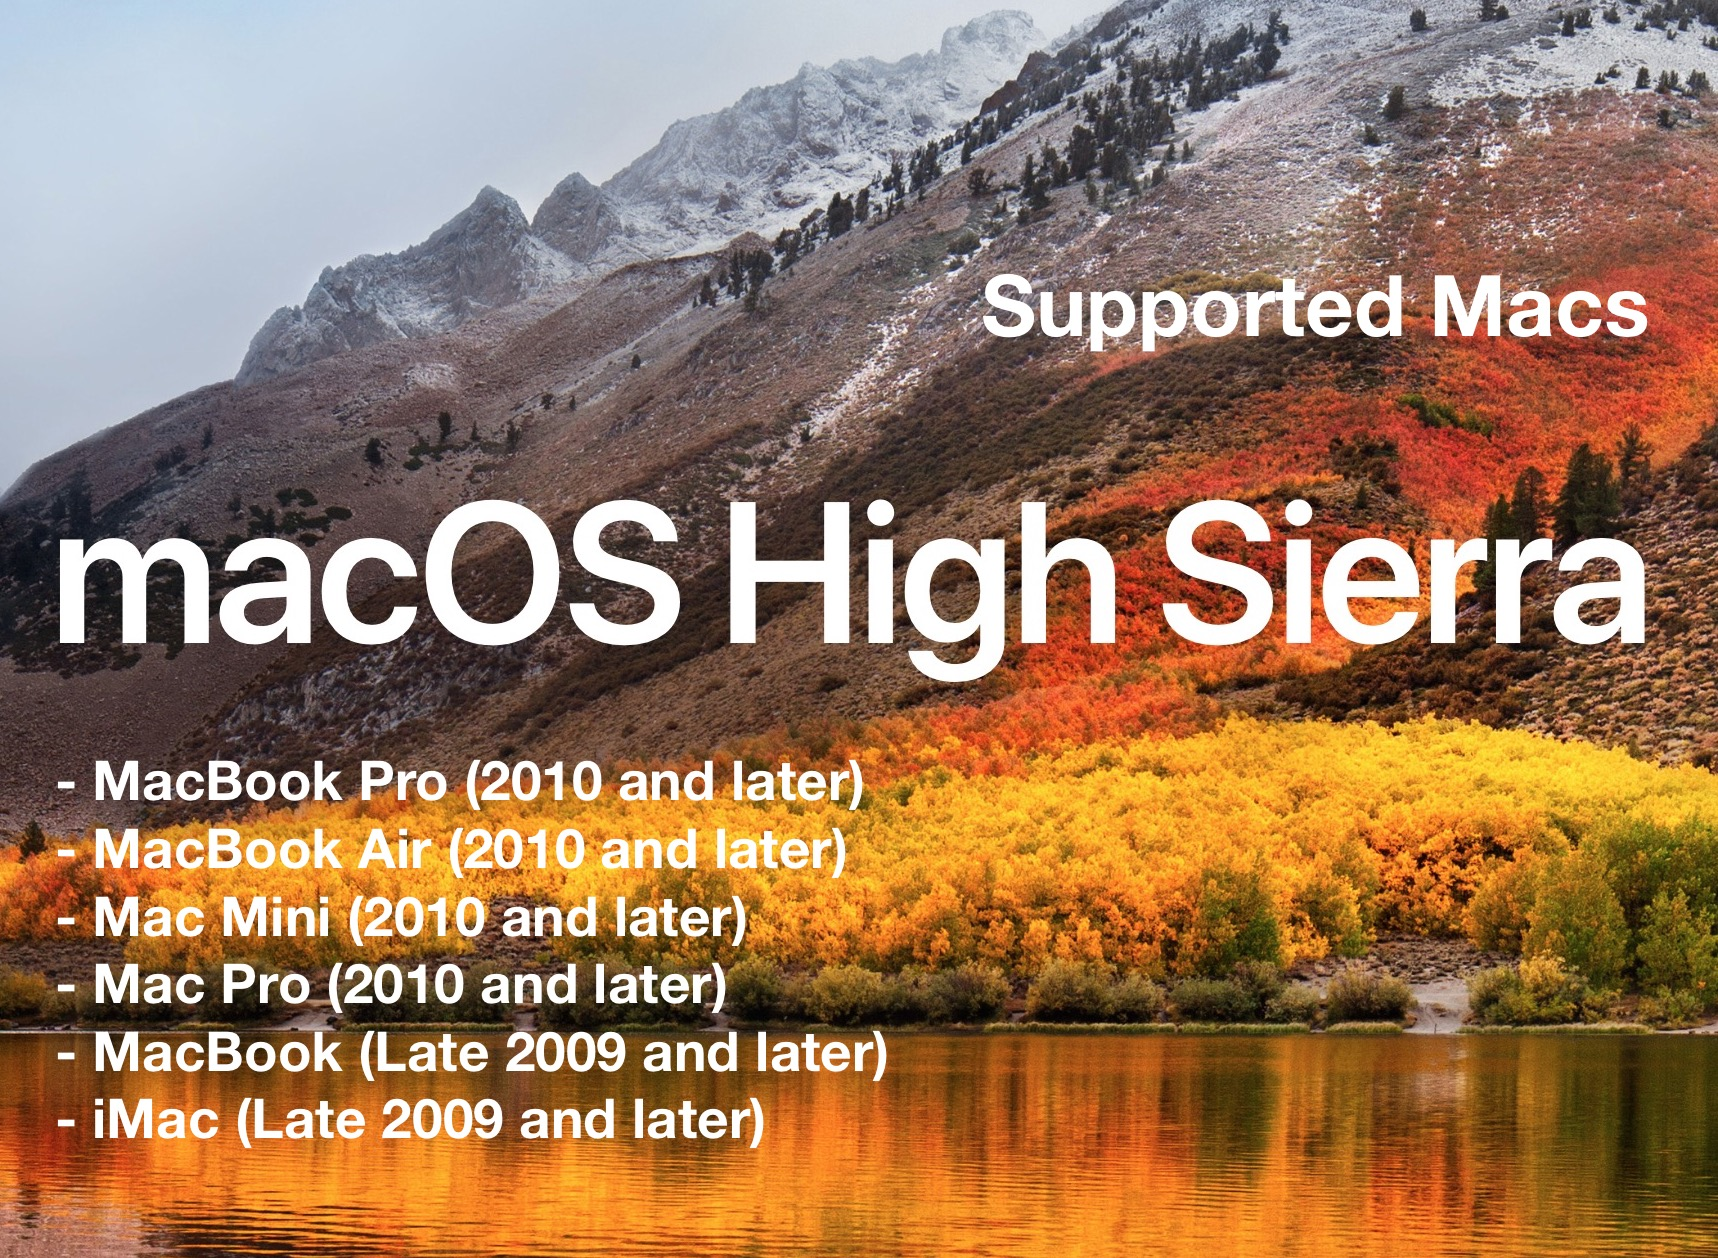 macOS High Sierra compatibility list